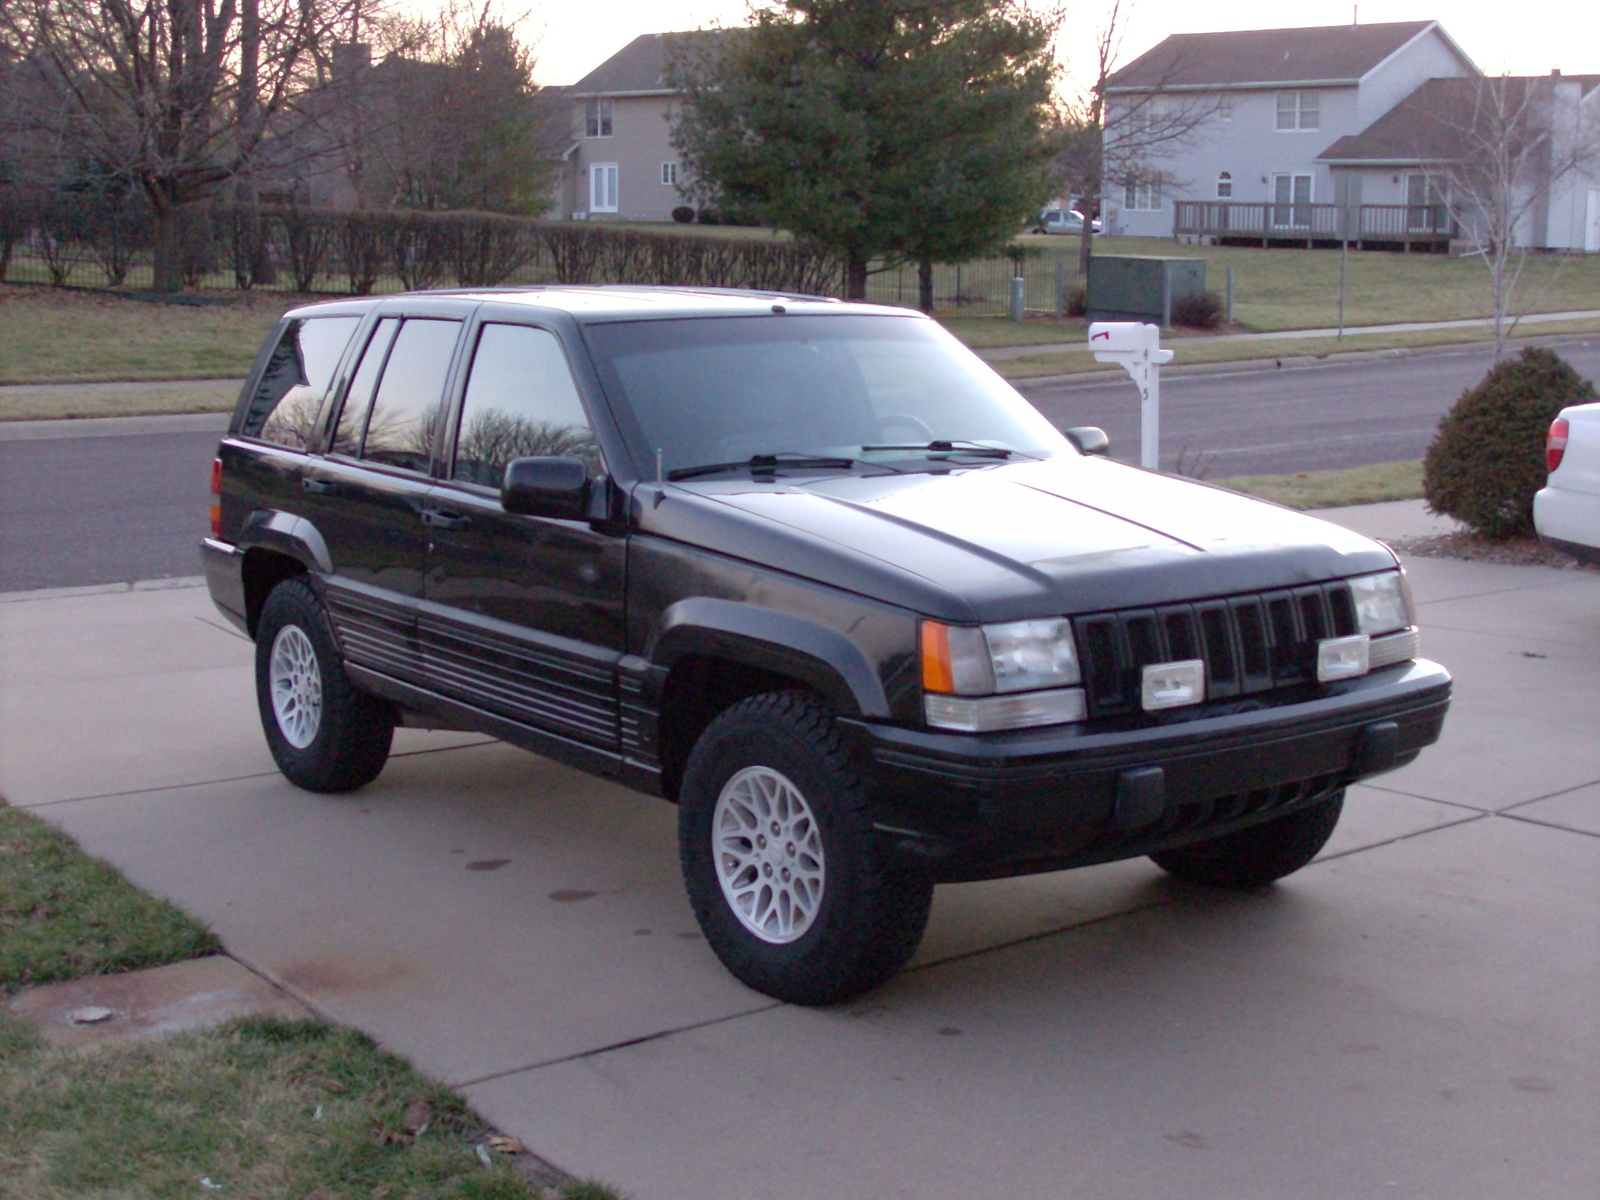 1993 Jeep Grand Cherokee 4 Dr Limited 4WD SUV picture